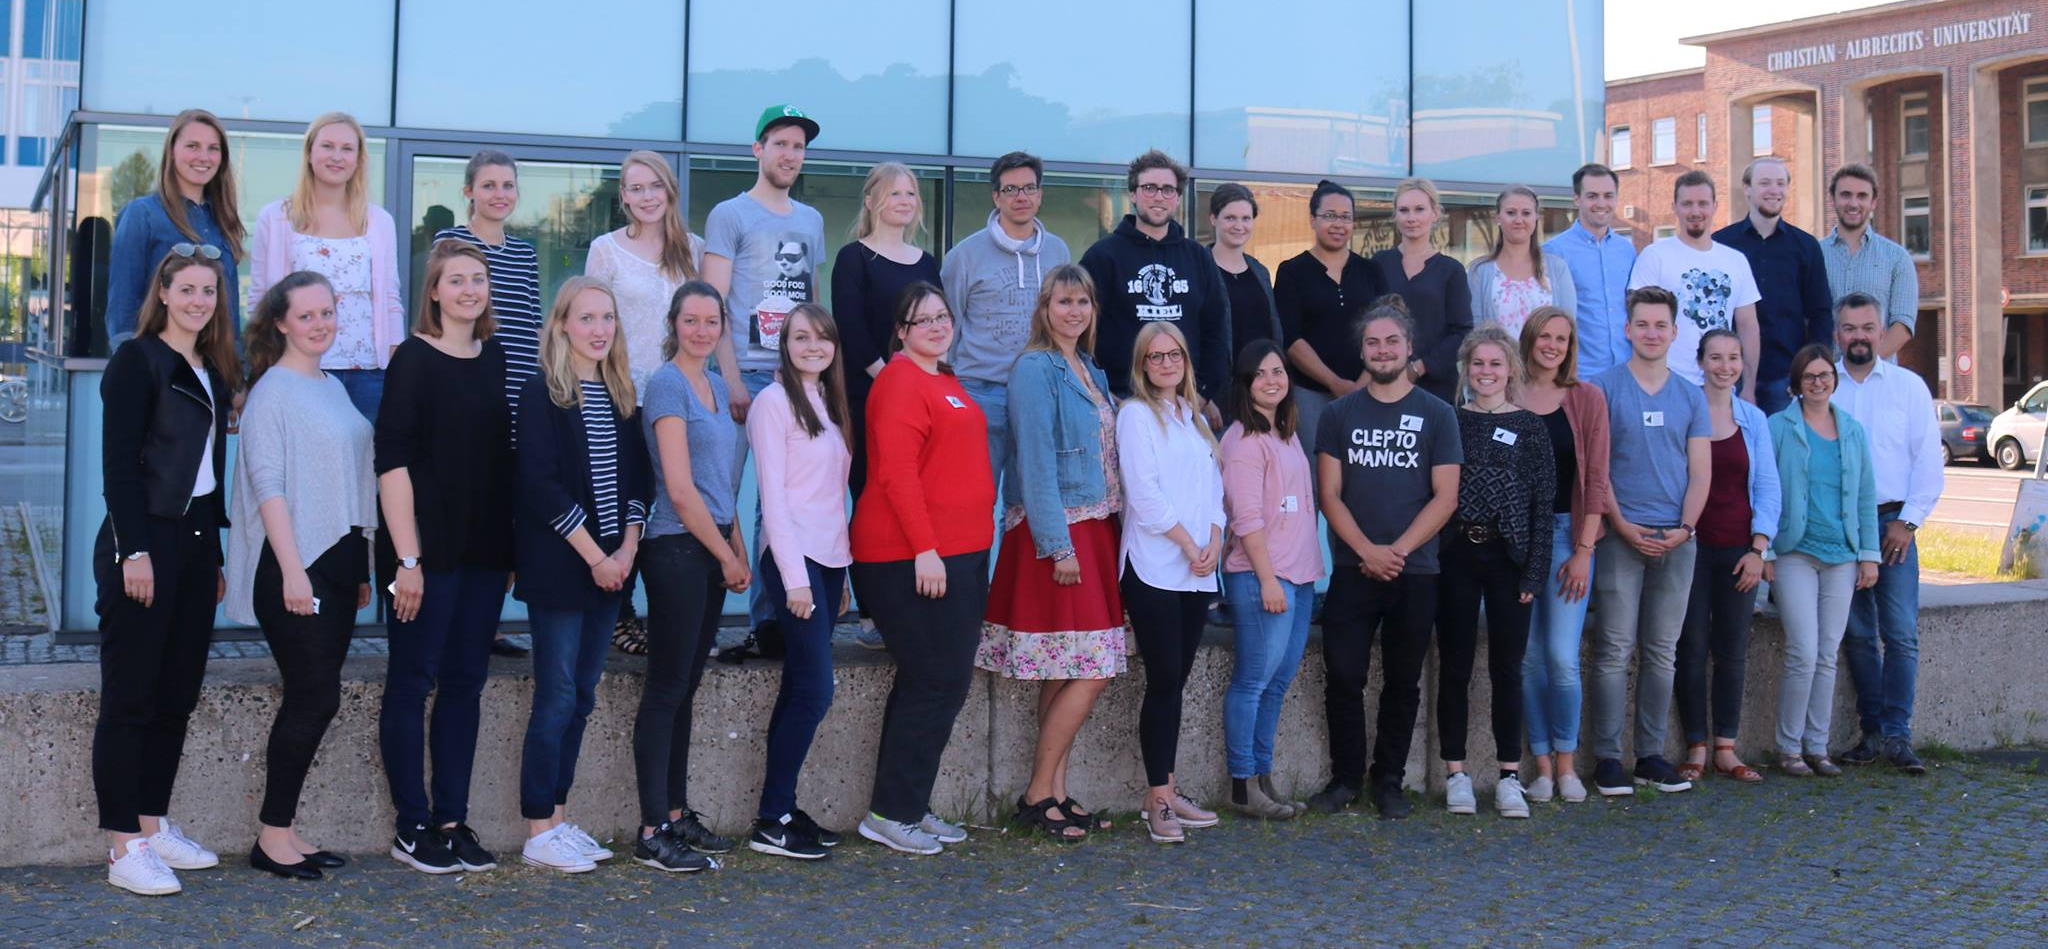 Das Team der Refugee Law Clinic Kiel im Panorama.